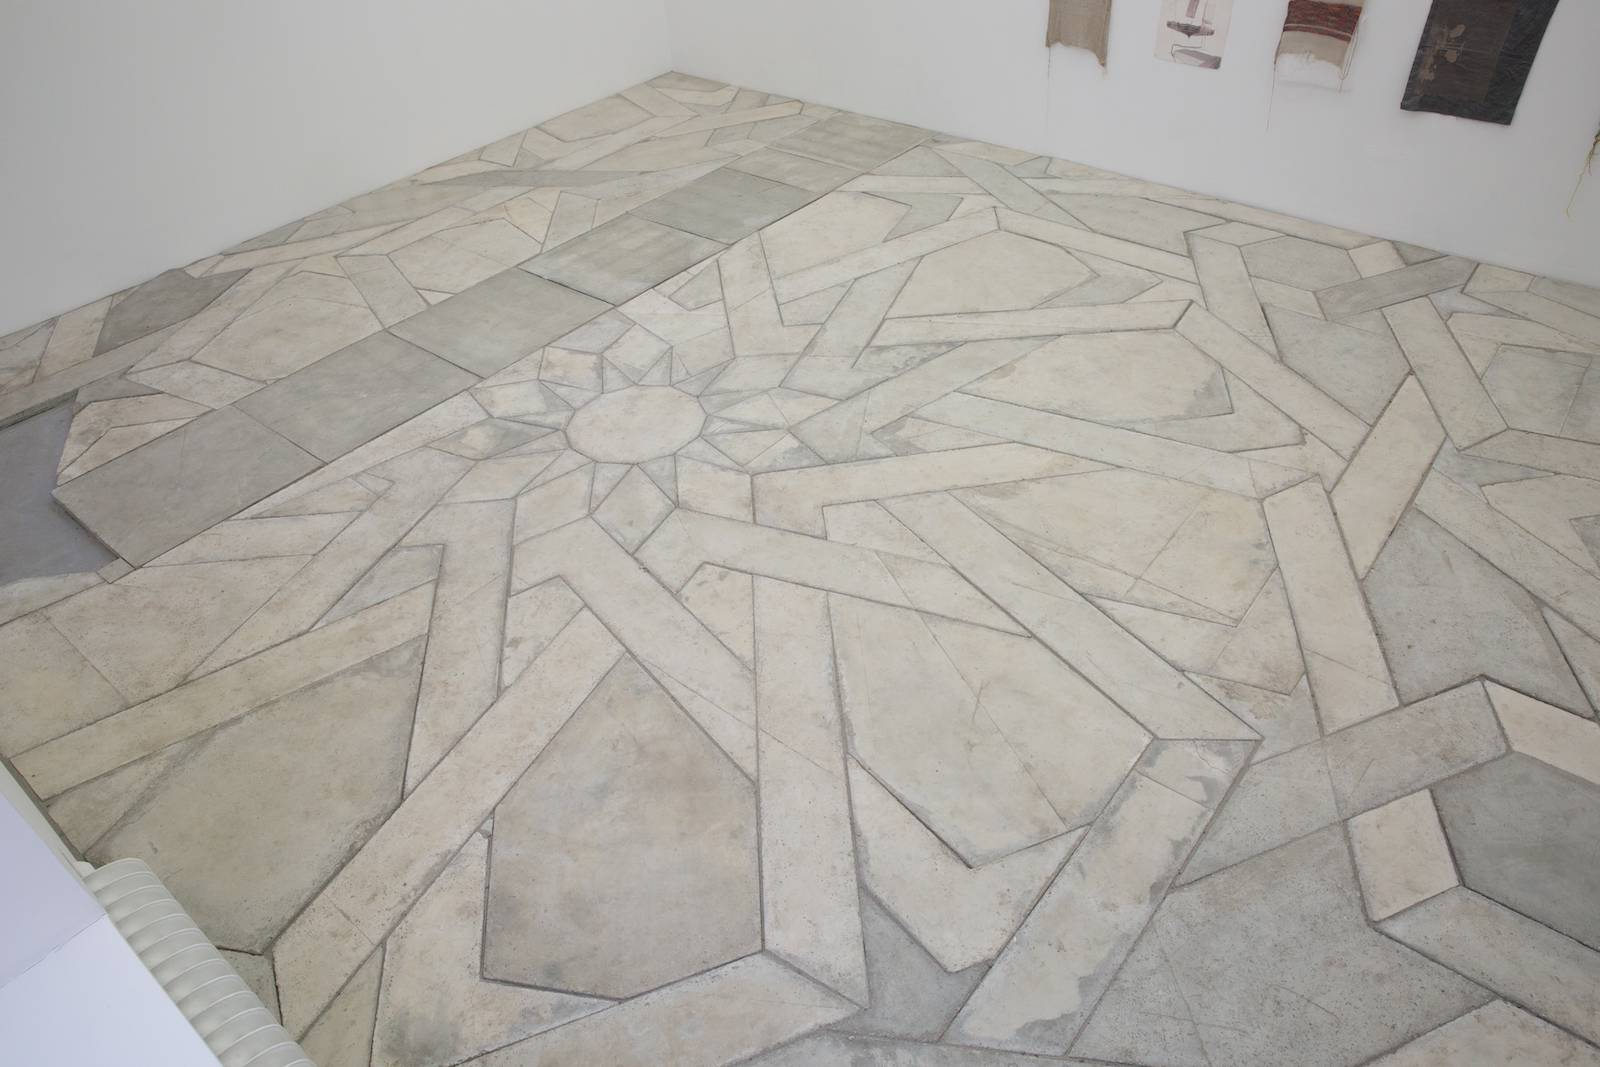 Concrete floor, 2014, cast concrete elements and sand, dimensions variable